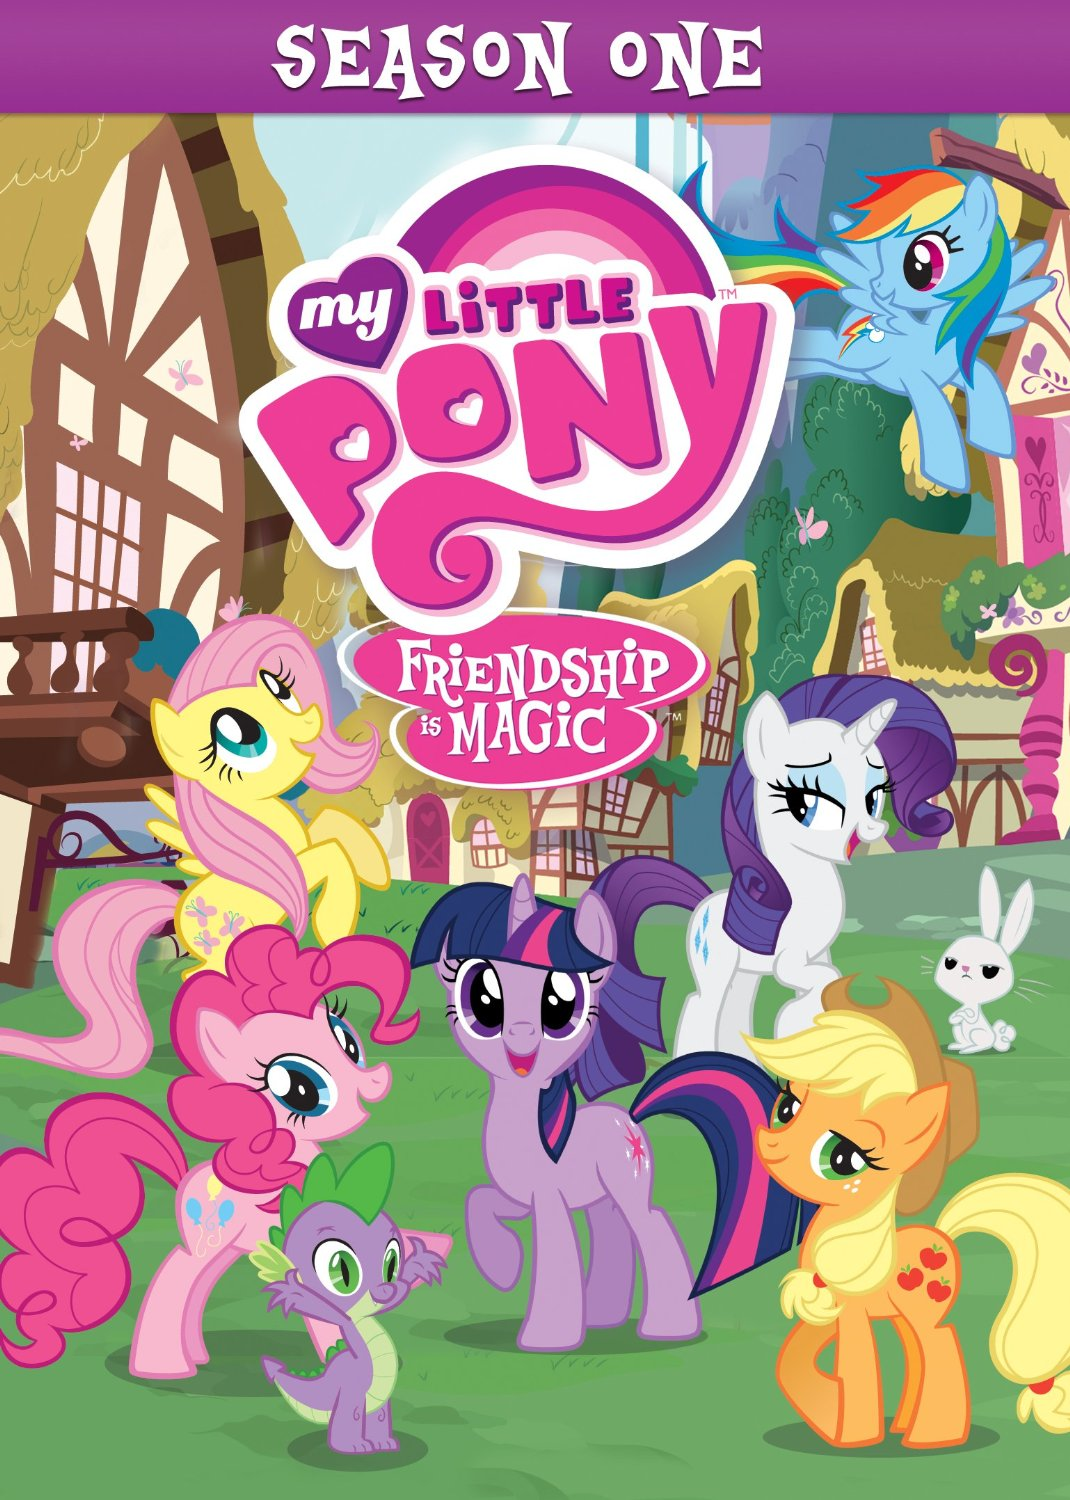 My Little Pony Friendship is Magic • Absolute Anime